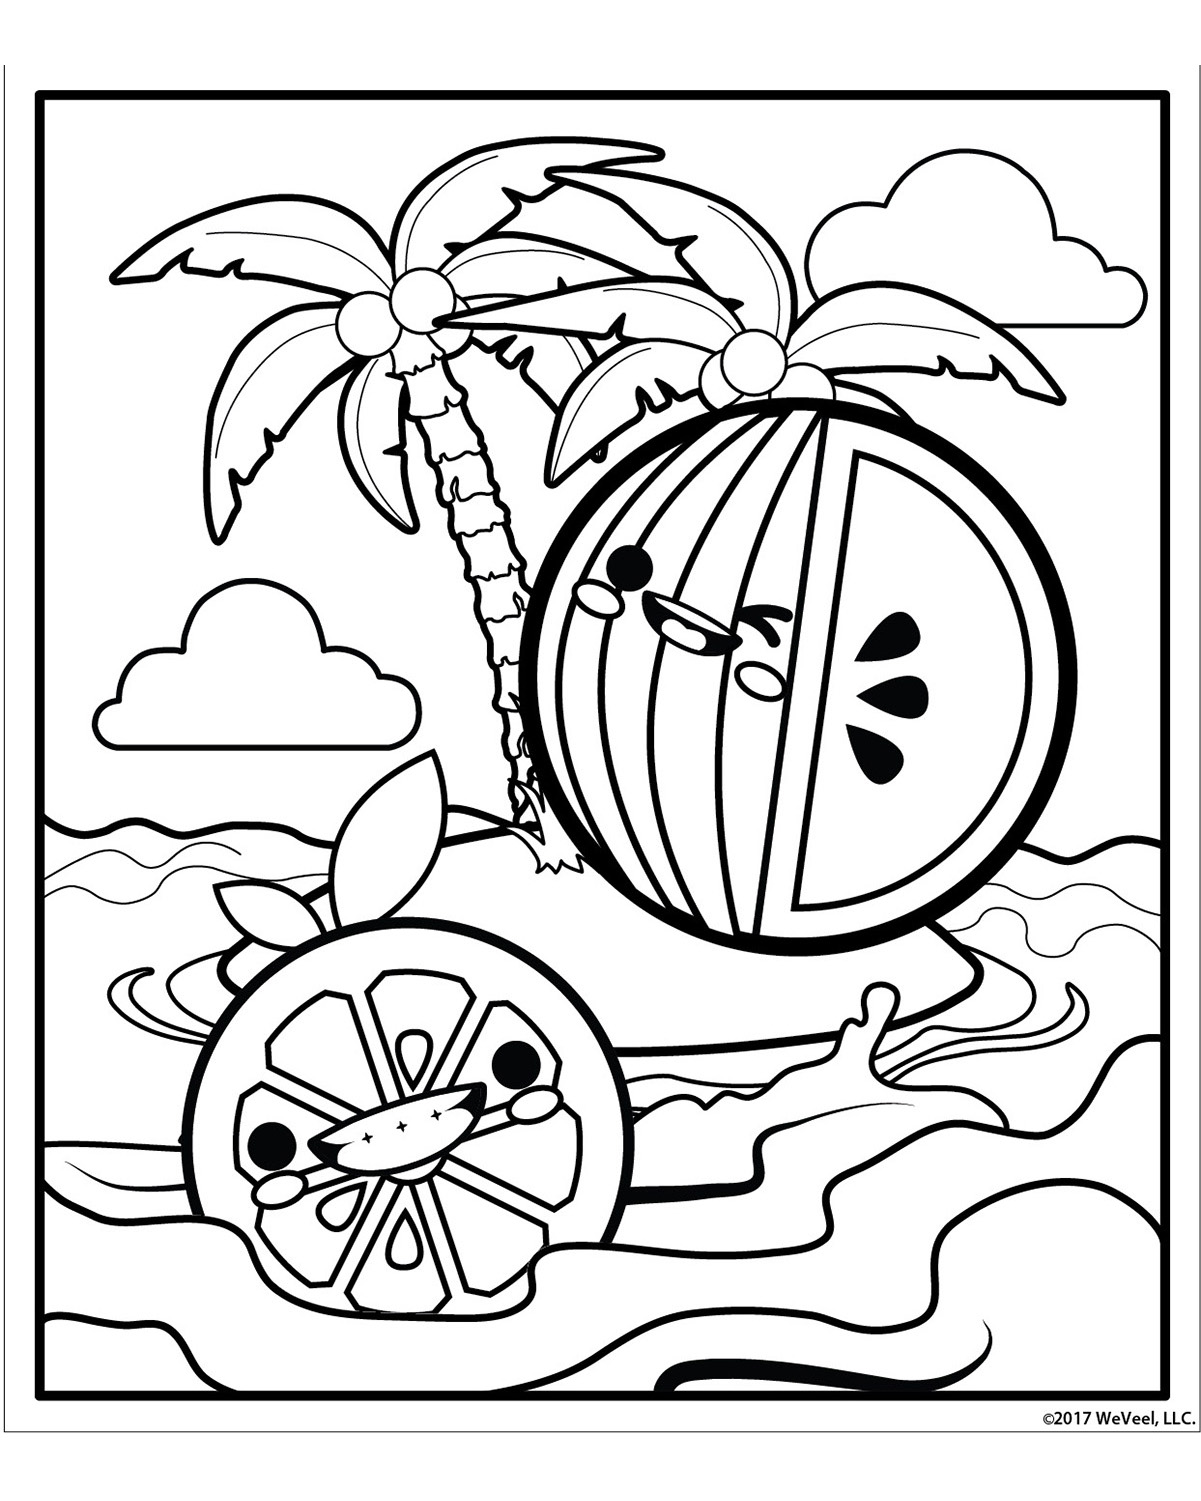 sugar rush coloring pages - photo#6